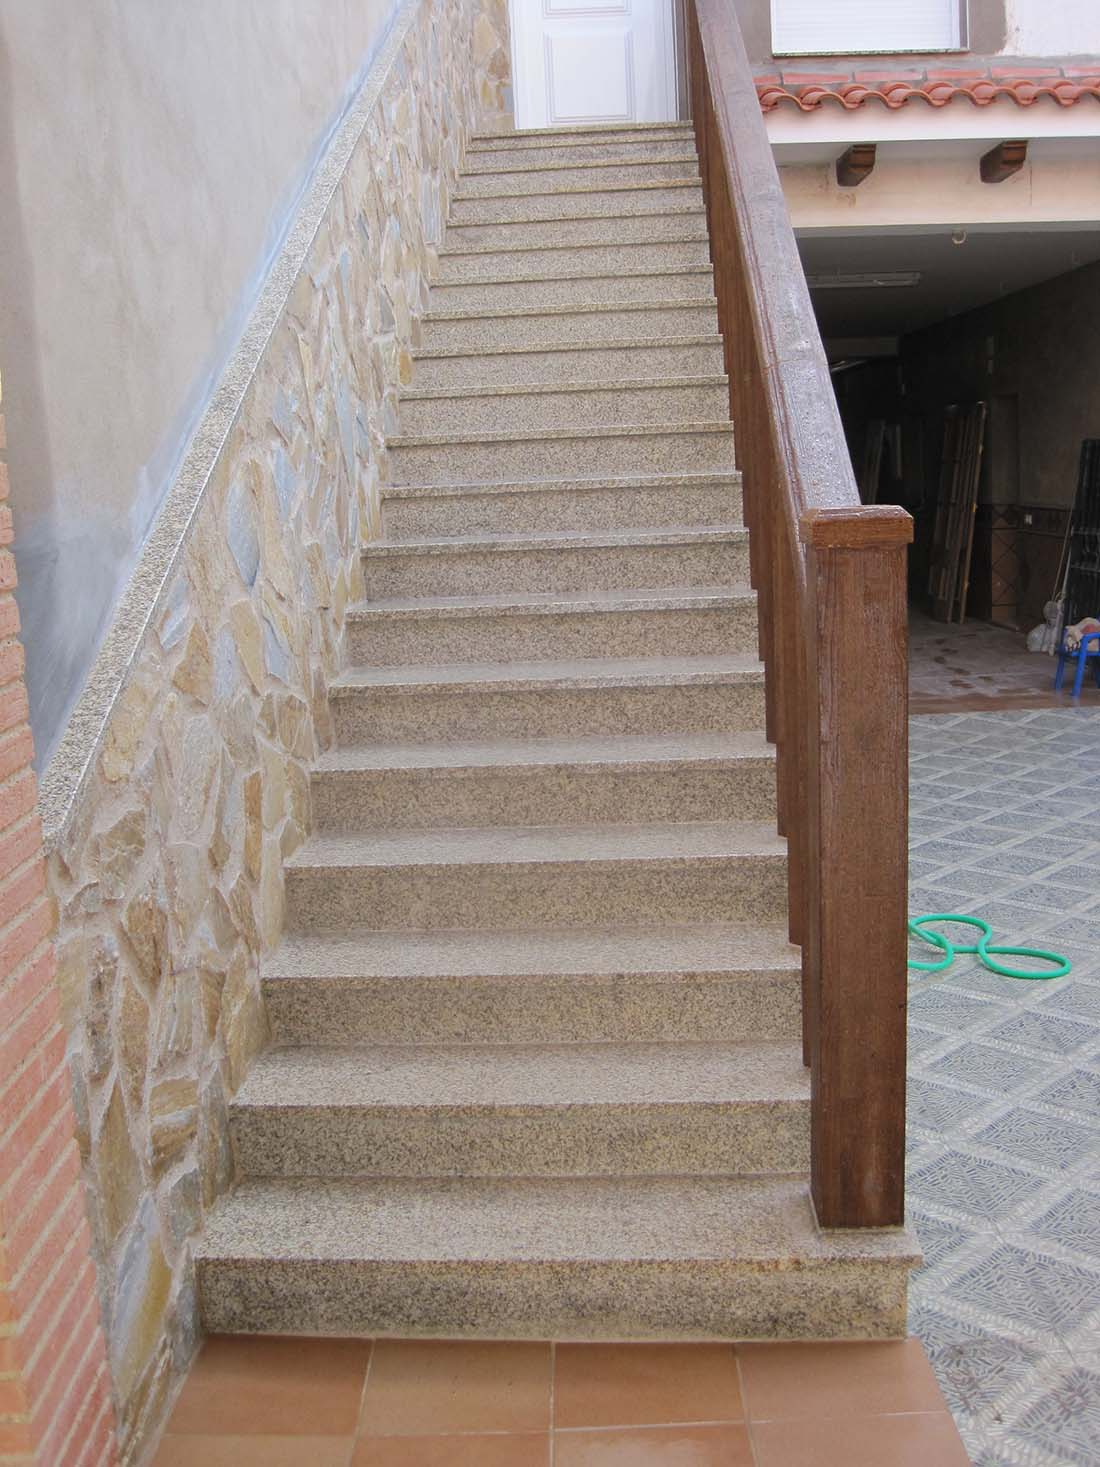 Tipos de escaleras para interiores perfect escalera baja for Escalones para escaleras exteriores